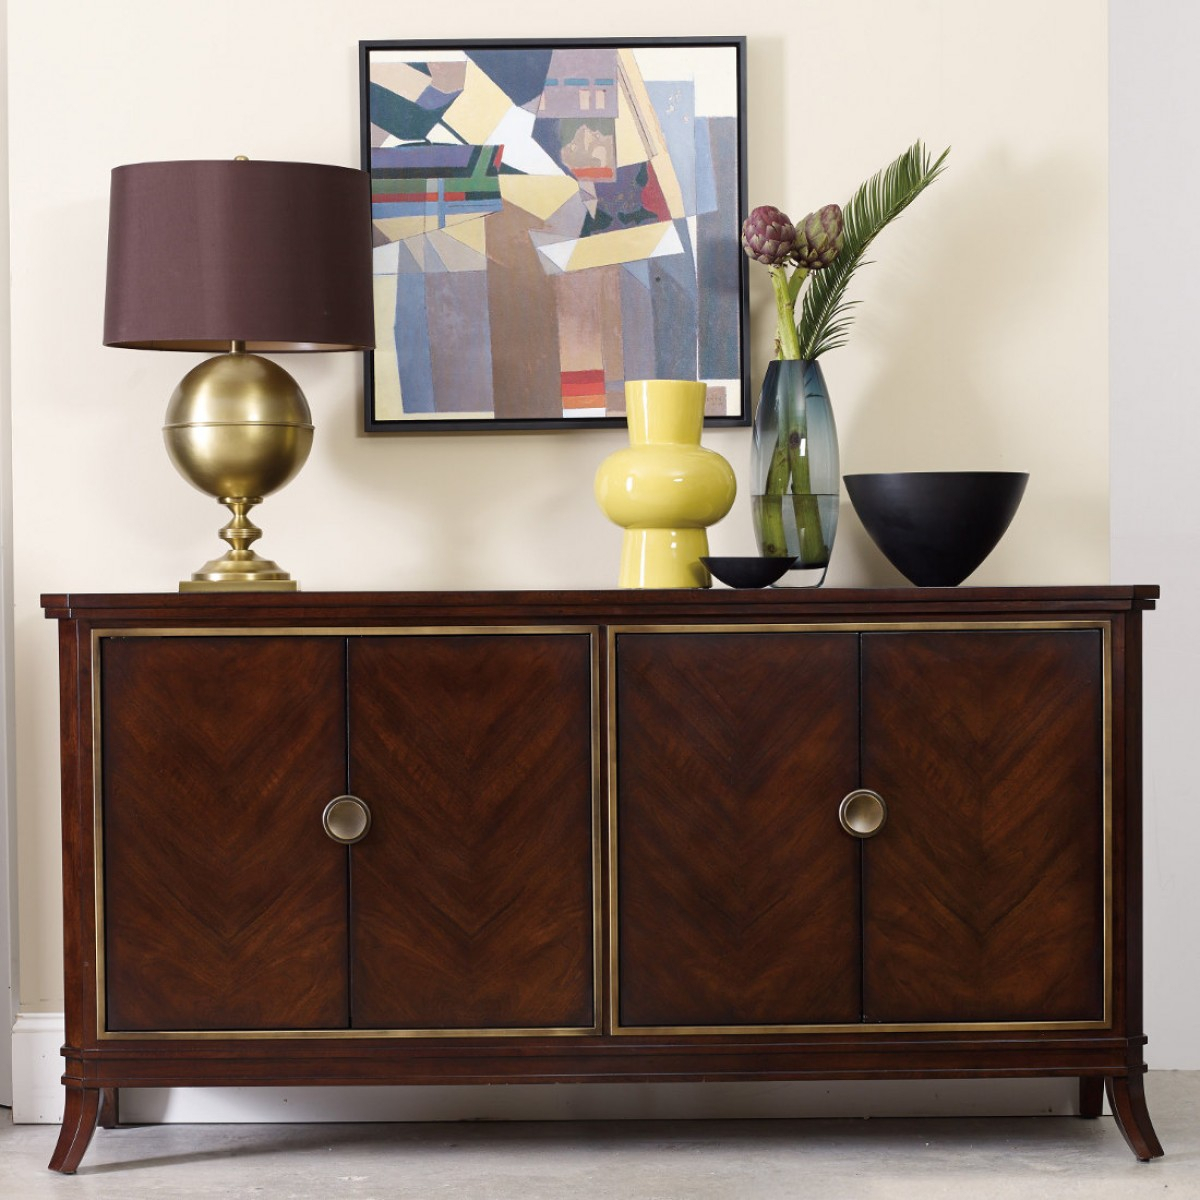 Hooker Furniture Palisade Four Door Chest with regard to Palisade Sideboards (Image 13 of 30)